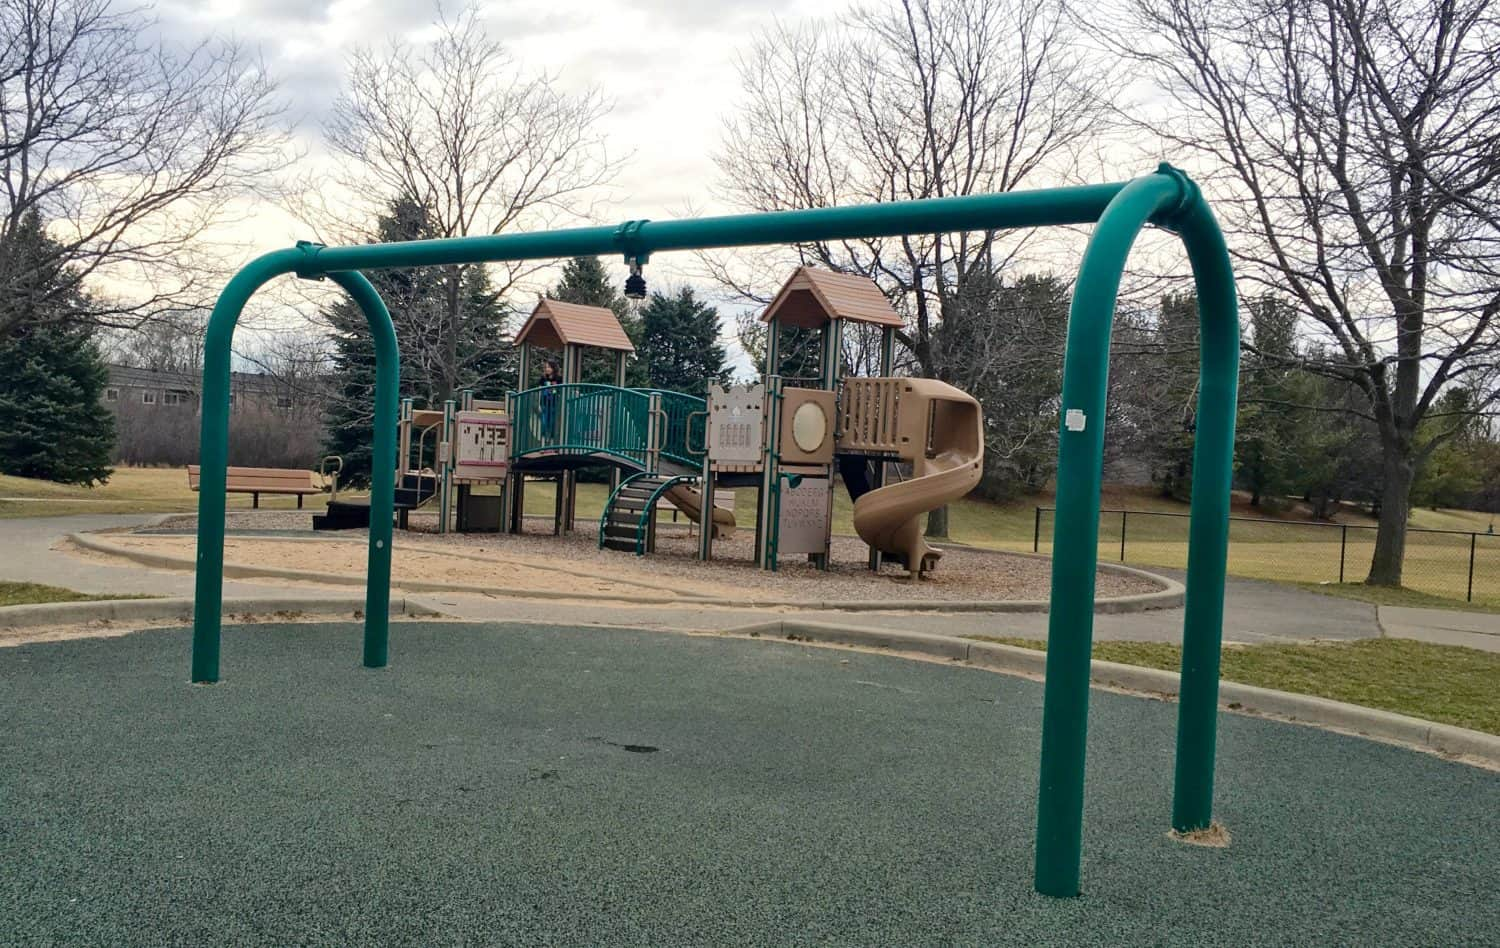 Mess Free Playgrounds - Southeast Area - Missing Tire Swing